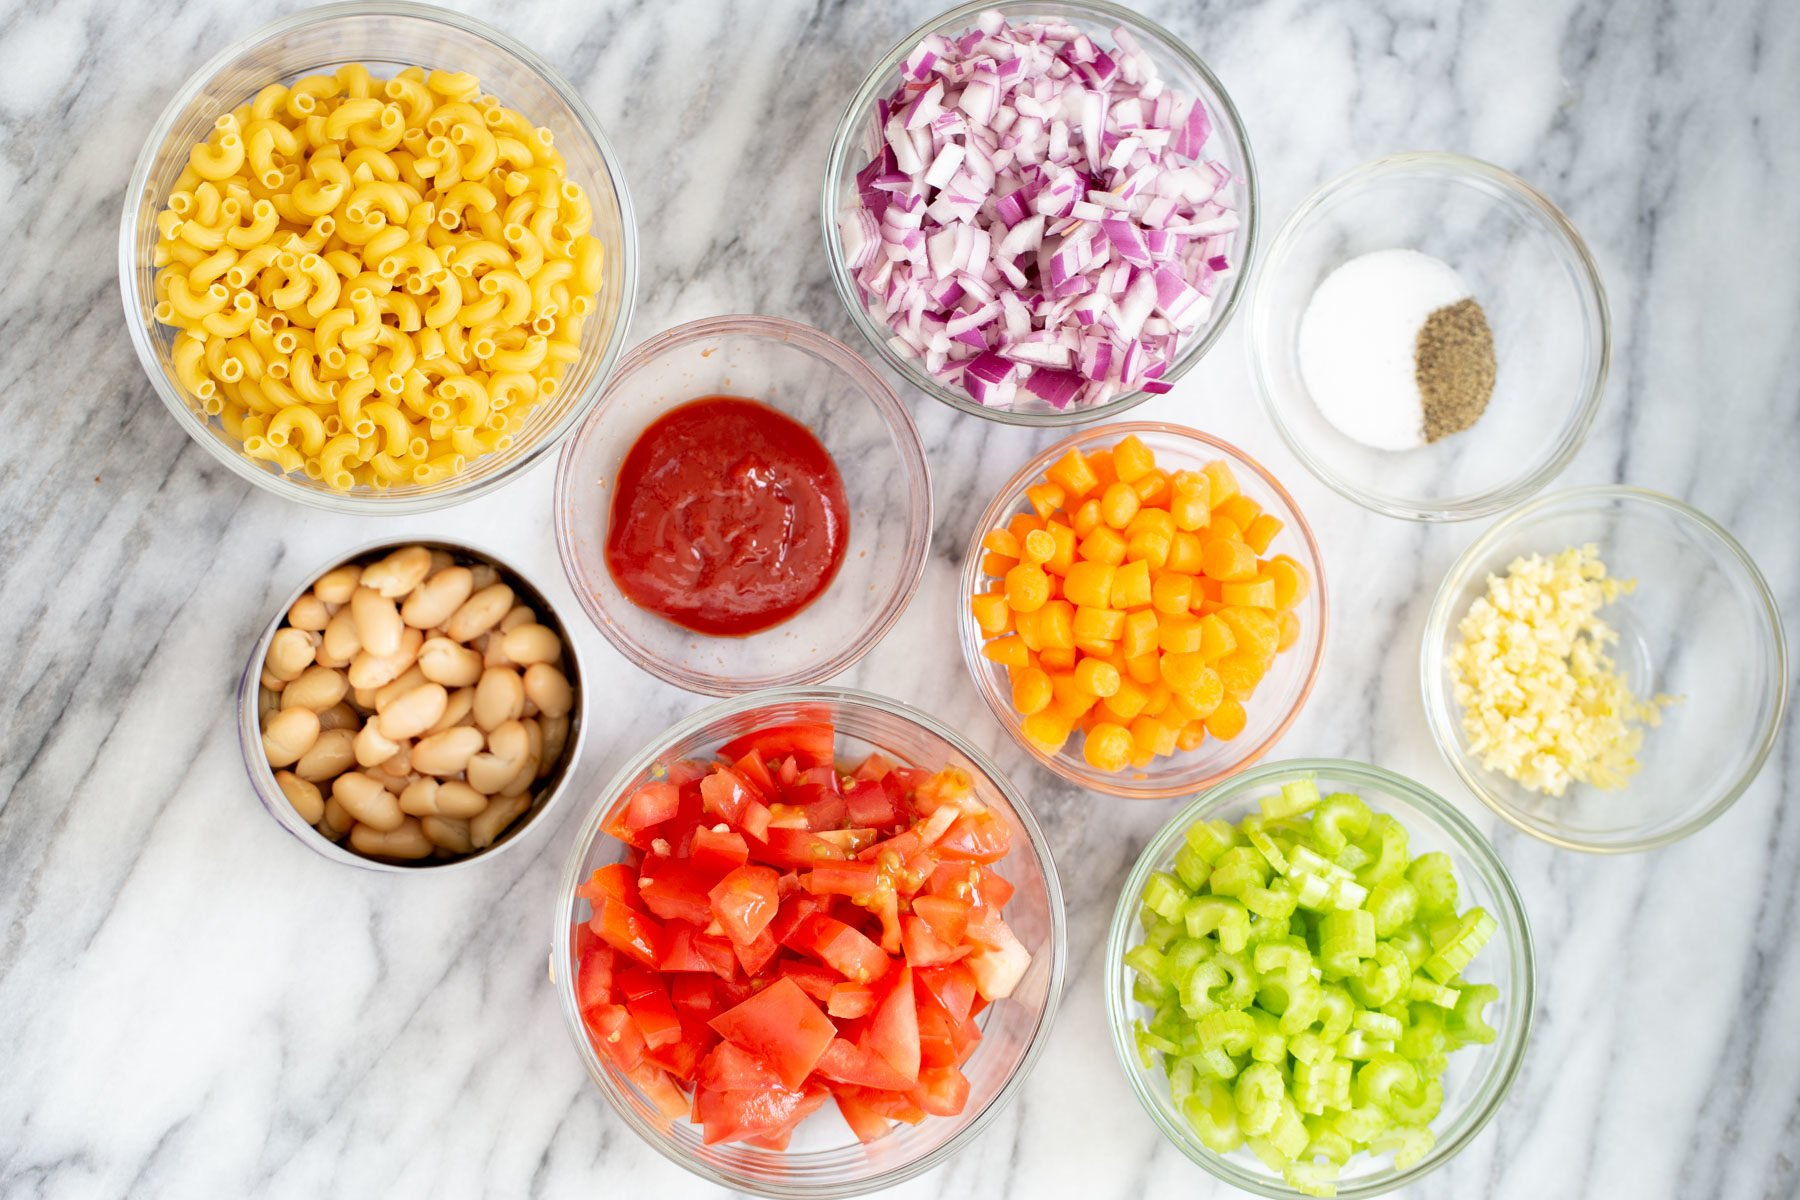 overhead shot of ingredients needed for making pasta e fagioli